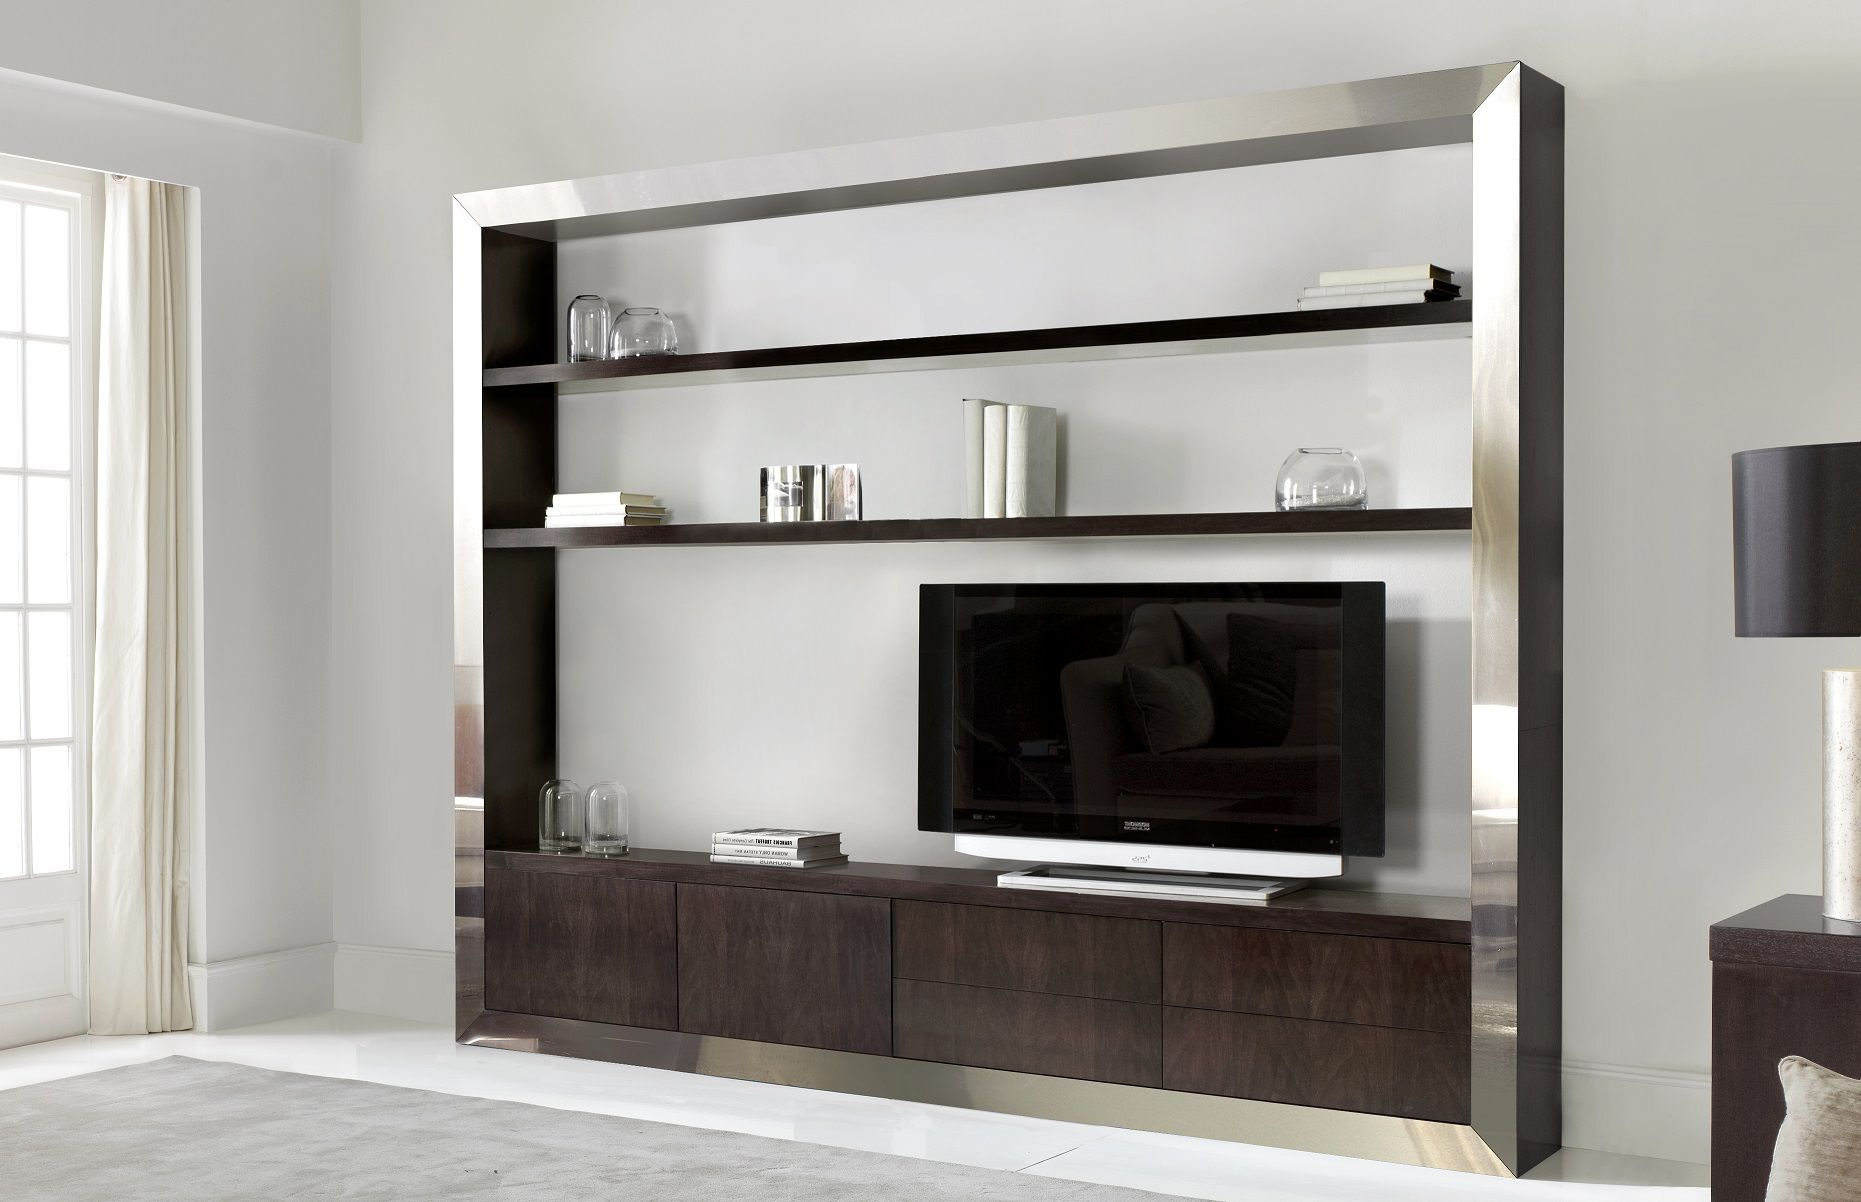 Tv shelving unit with stainless steel for Tv shelving wall units